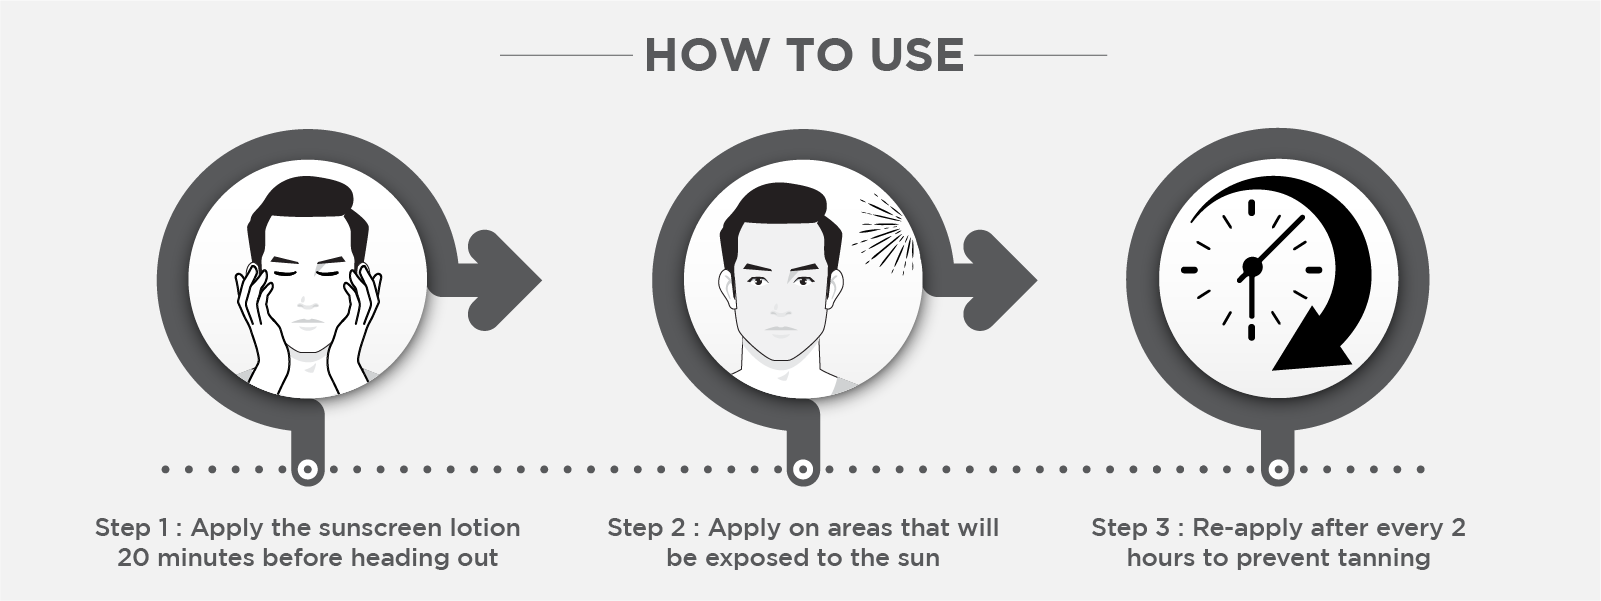 How to use sunscreen for men